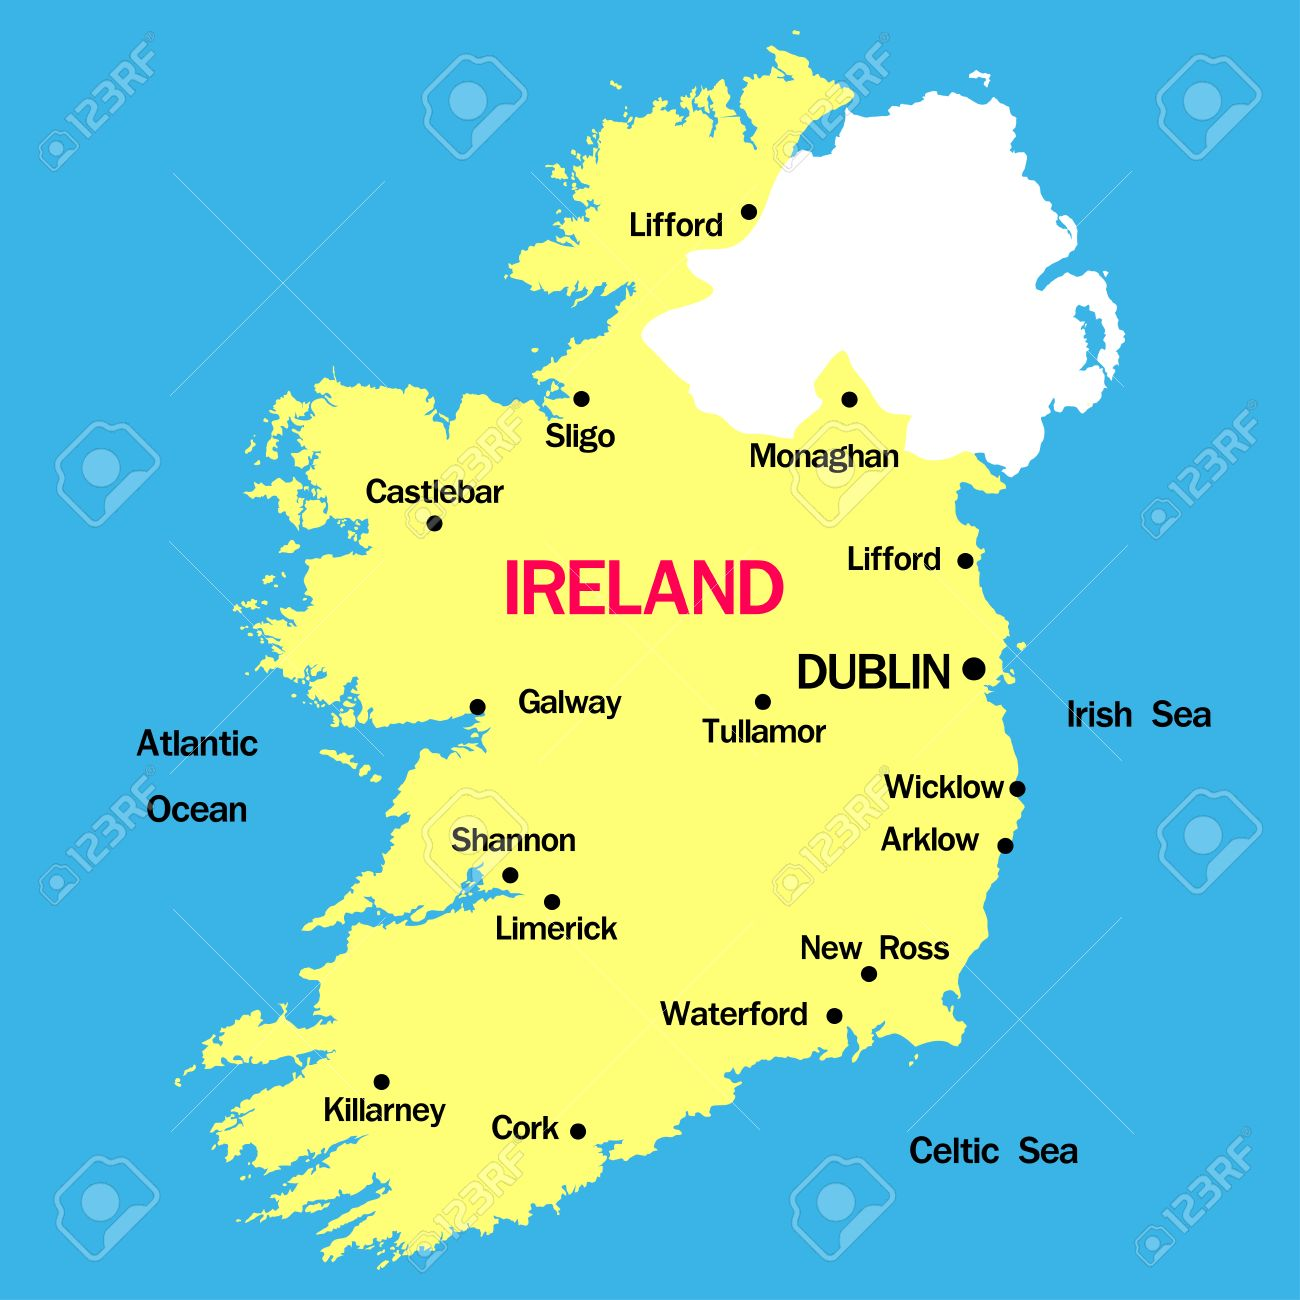 Map Of Ireland With Cities Vector Map Of Ireland With Cities Royalty Free Cliparts, Vectors